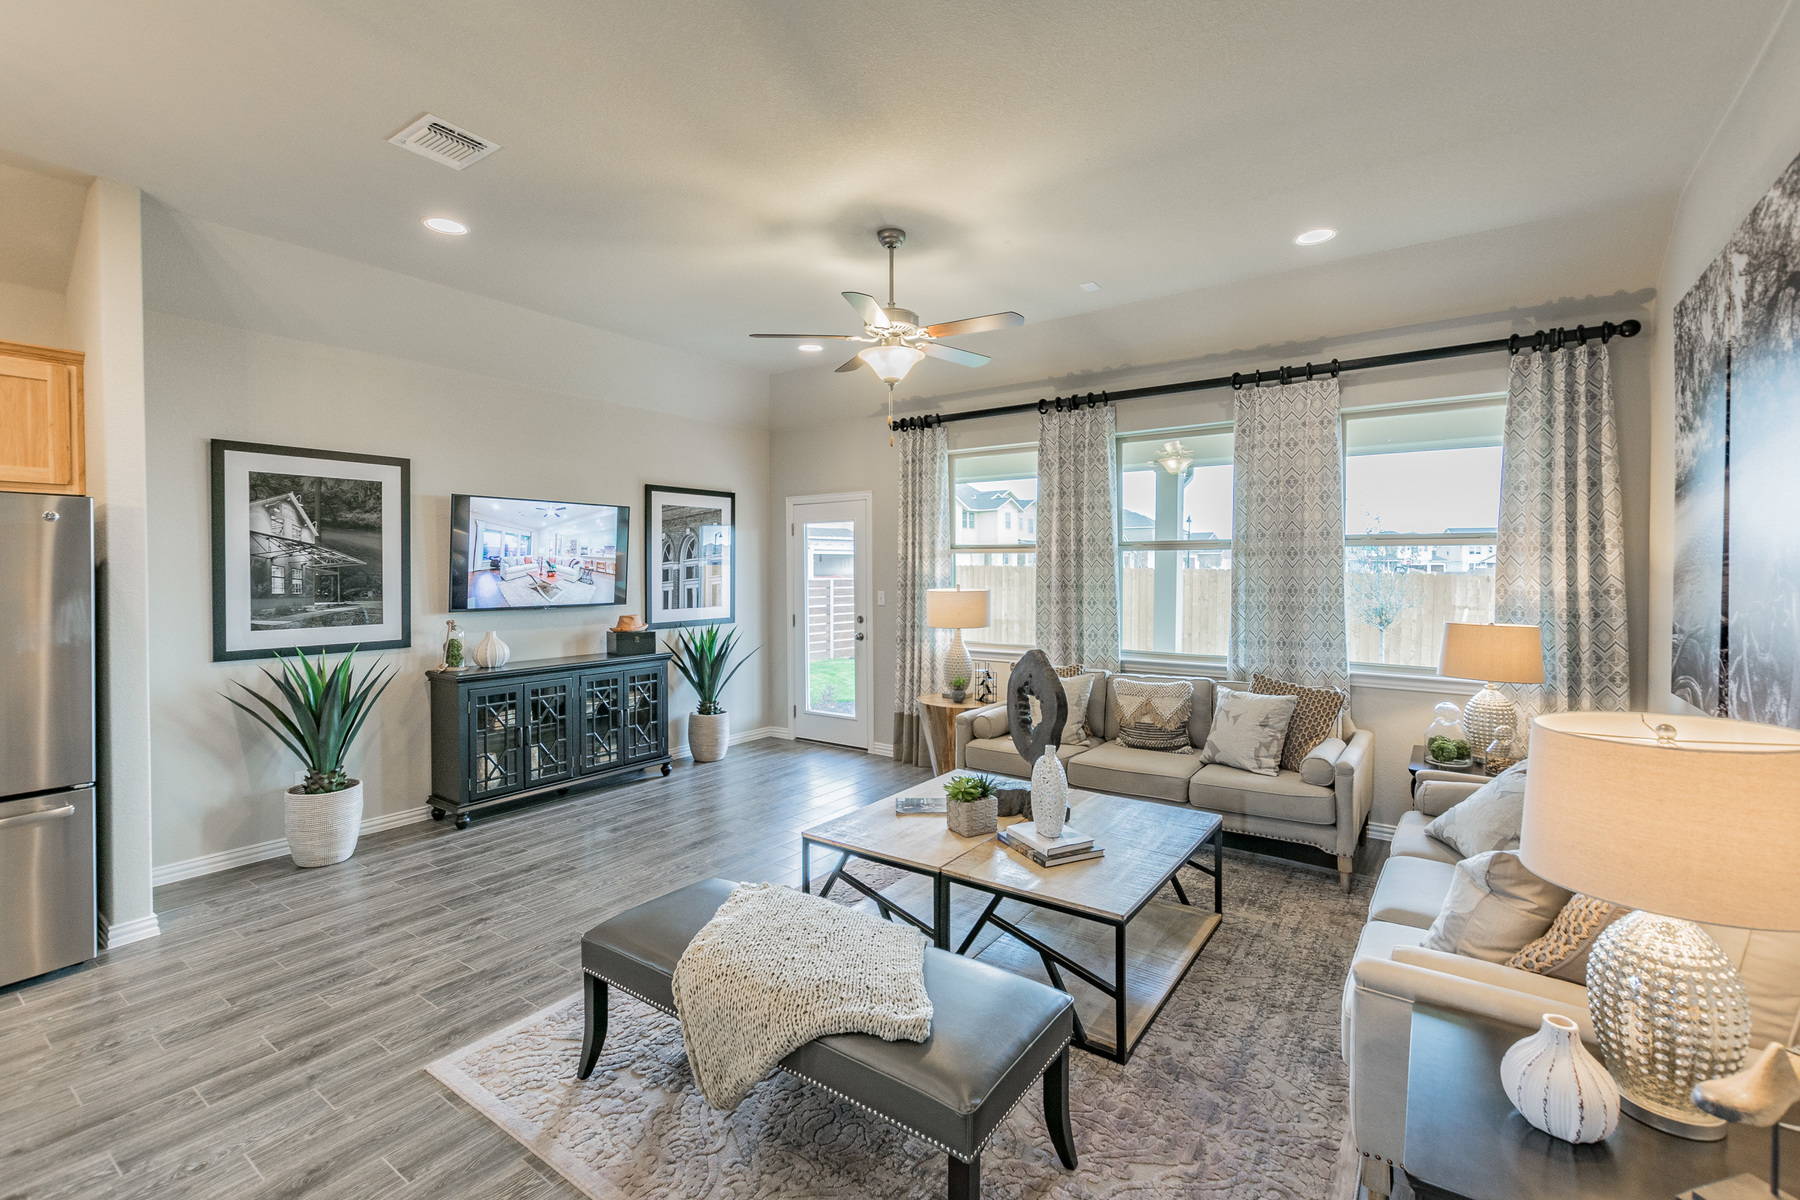 6 Creeks Signature Family Room